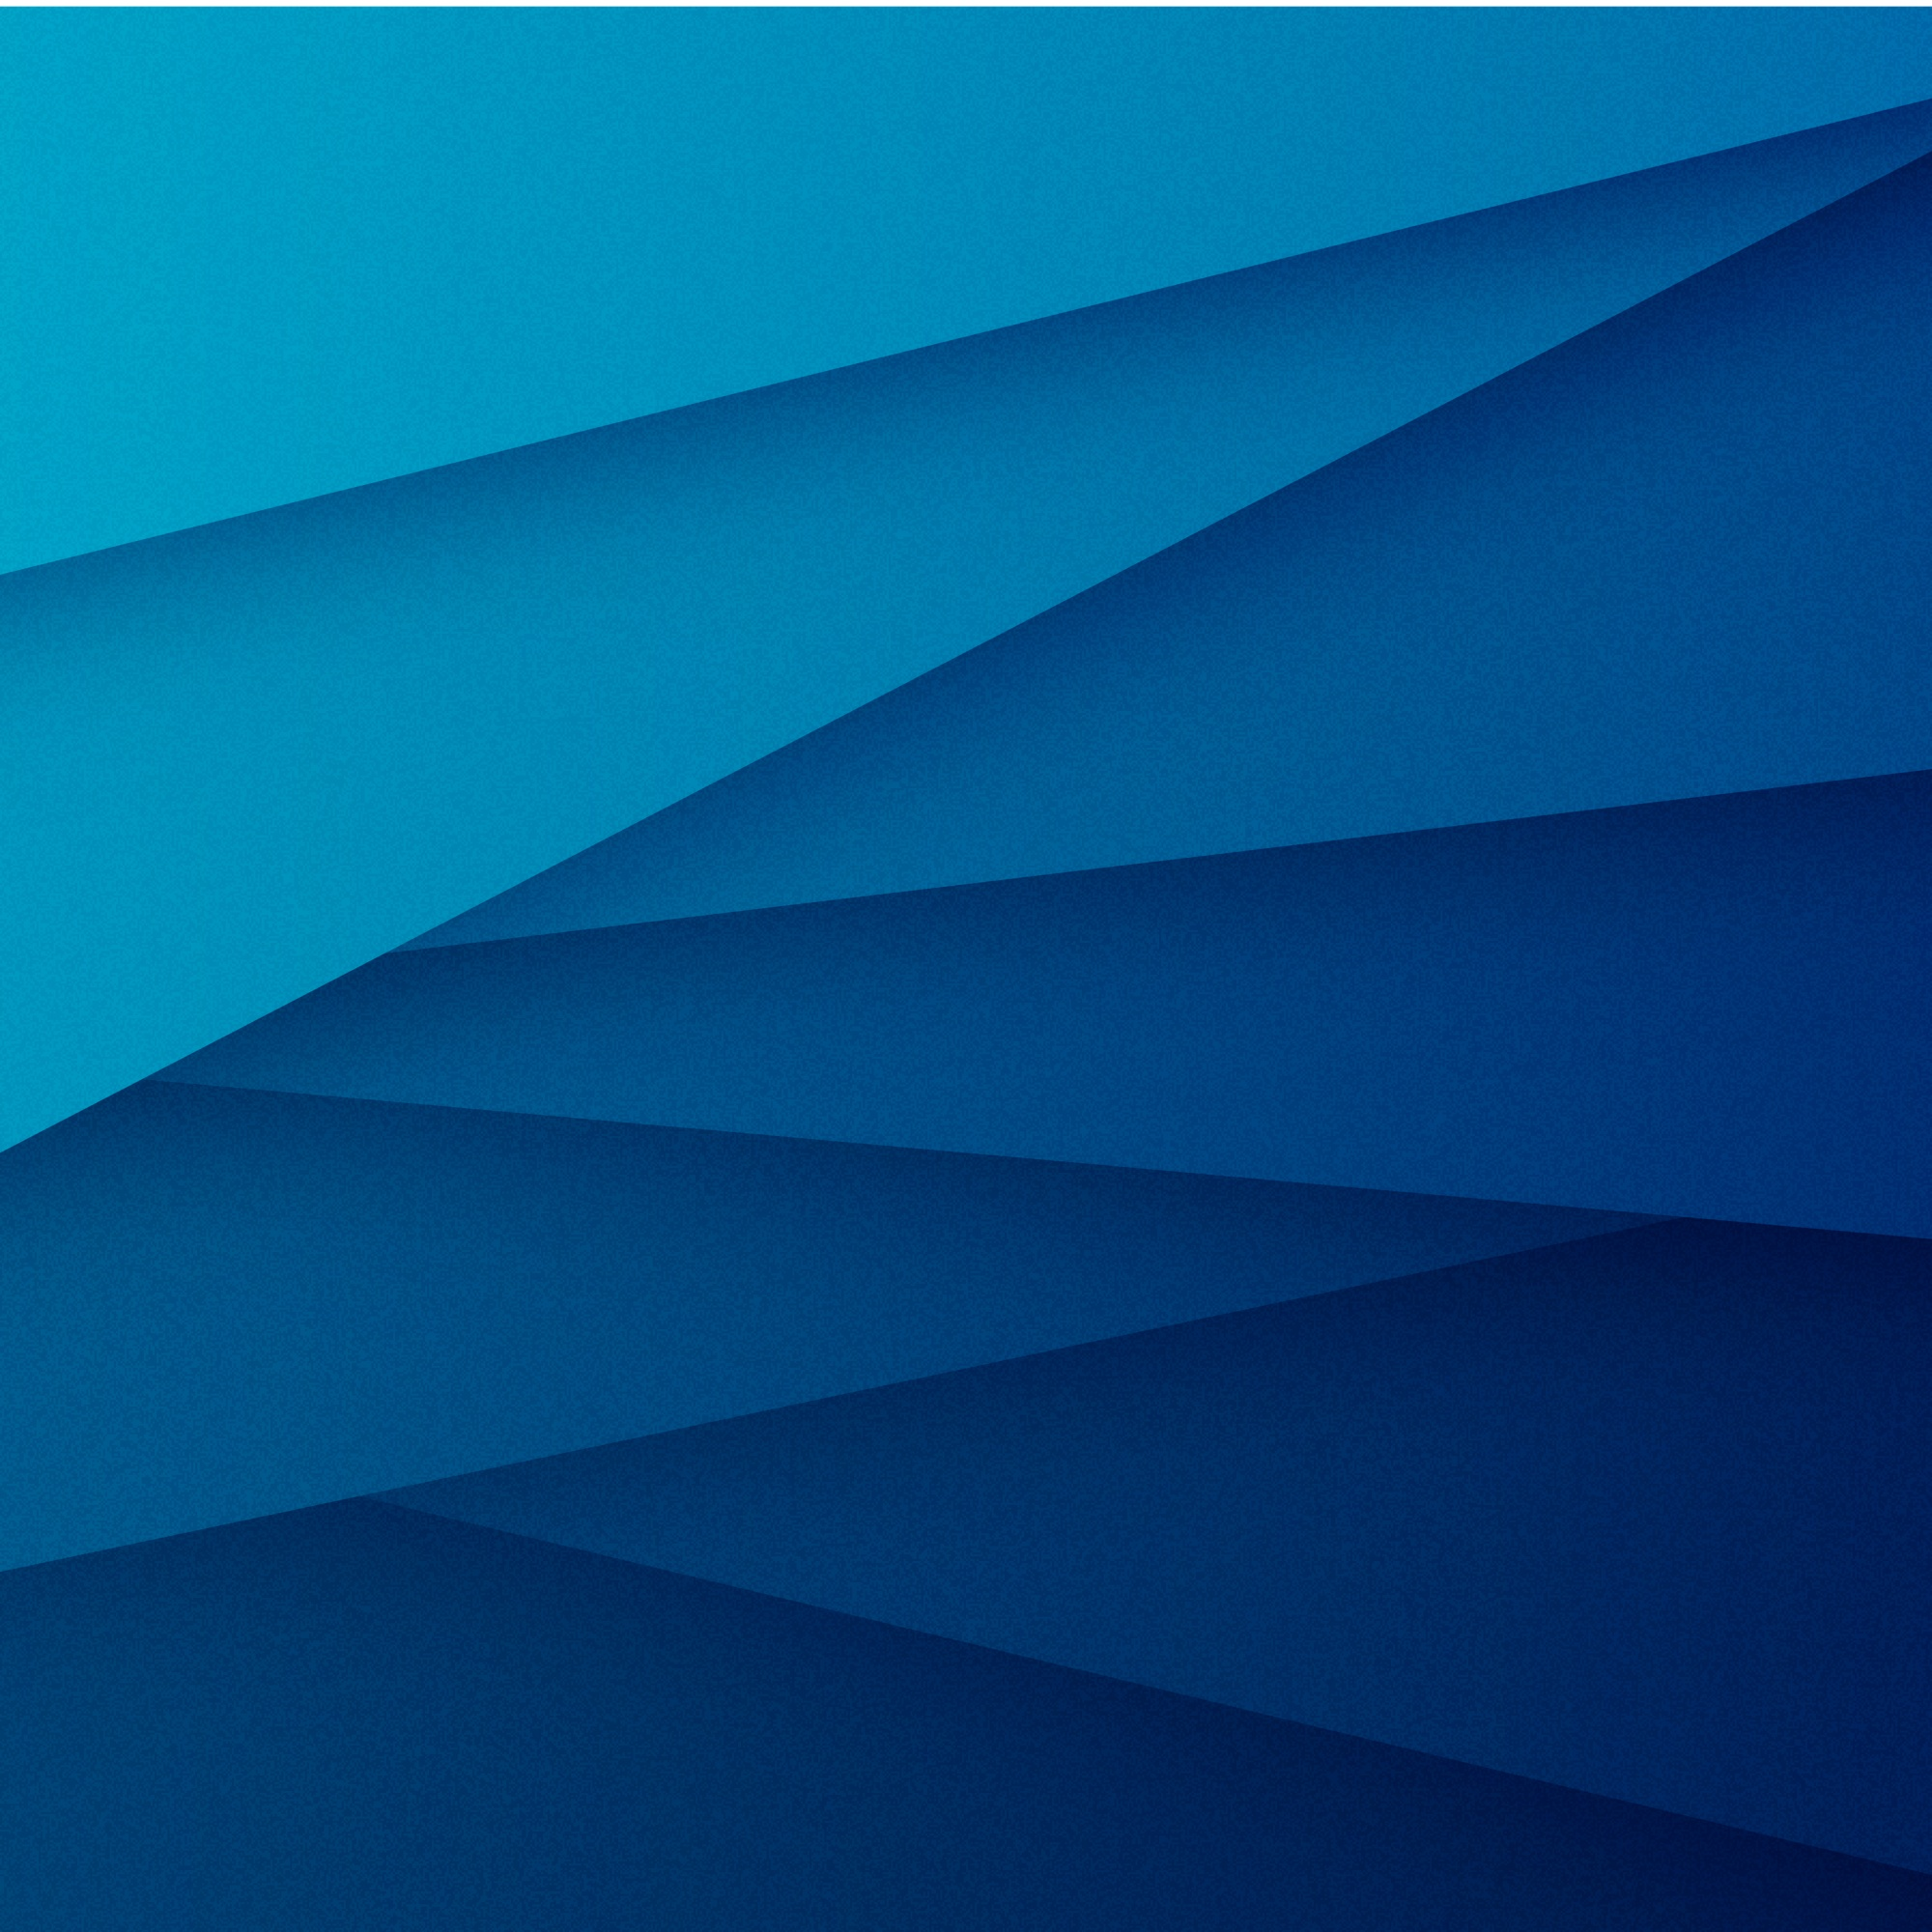 Abstract Paper Style Background Multipurpose